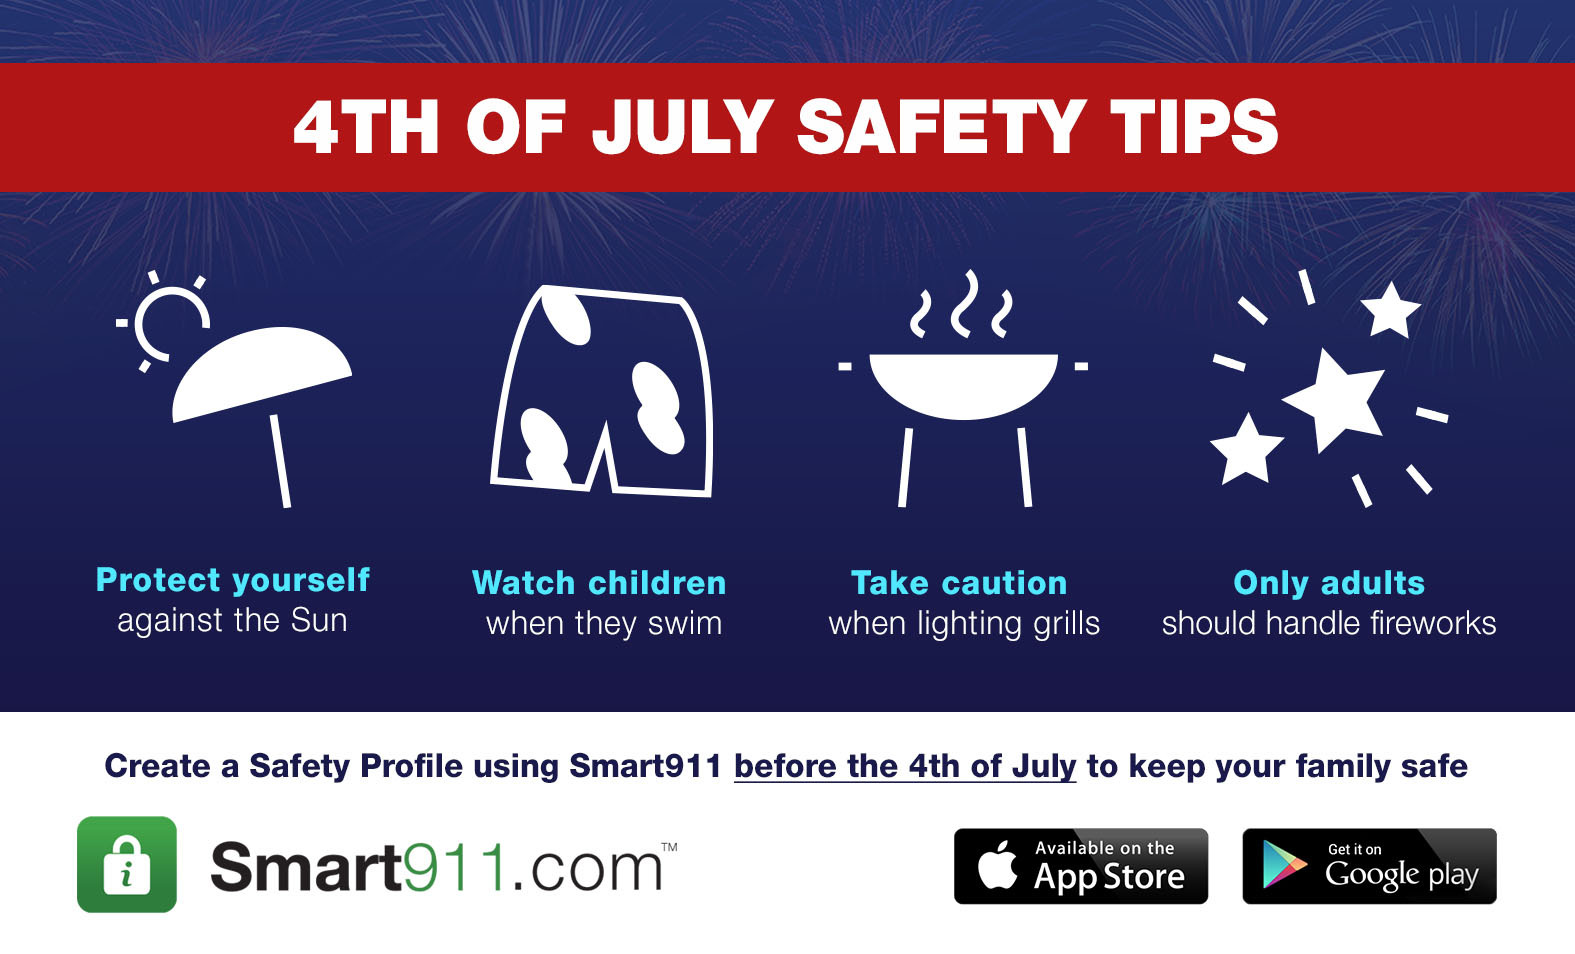 S911-_4th_of_July_2020-_5_Safety_Tips